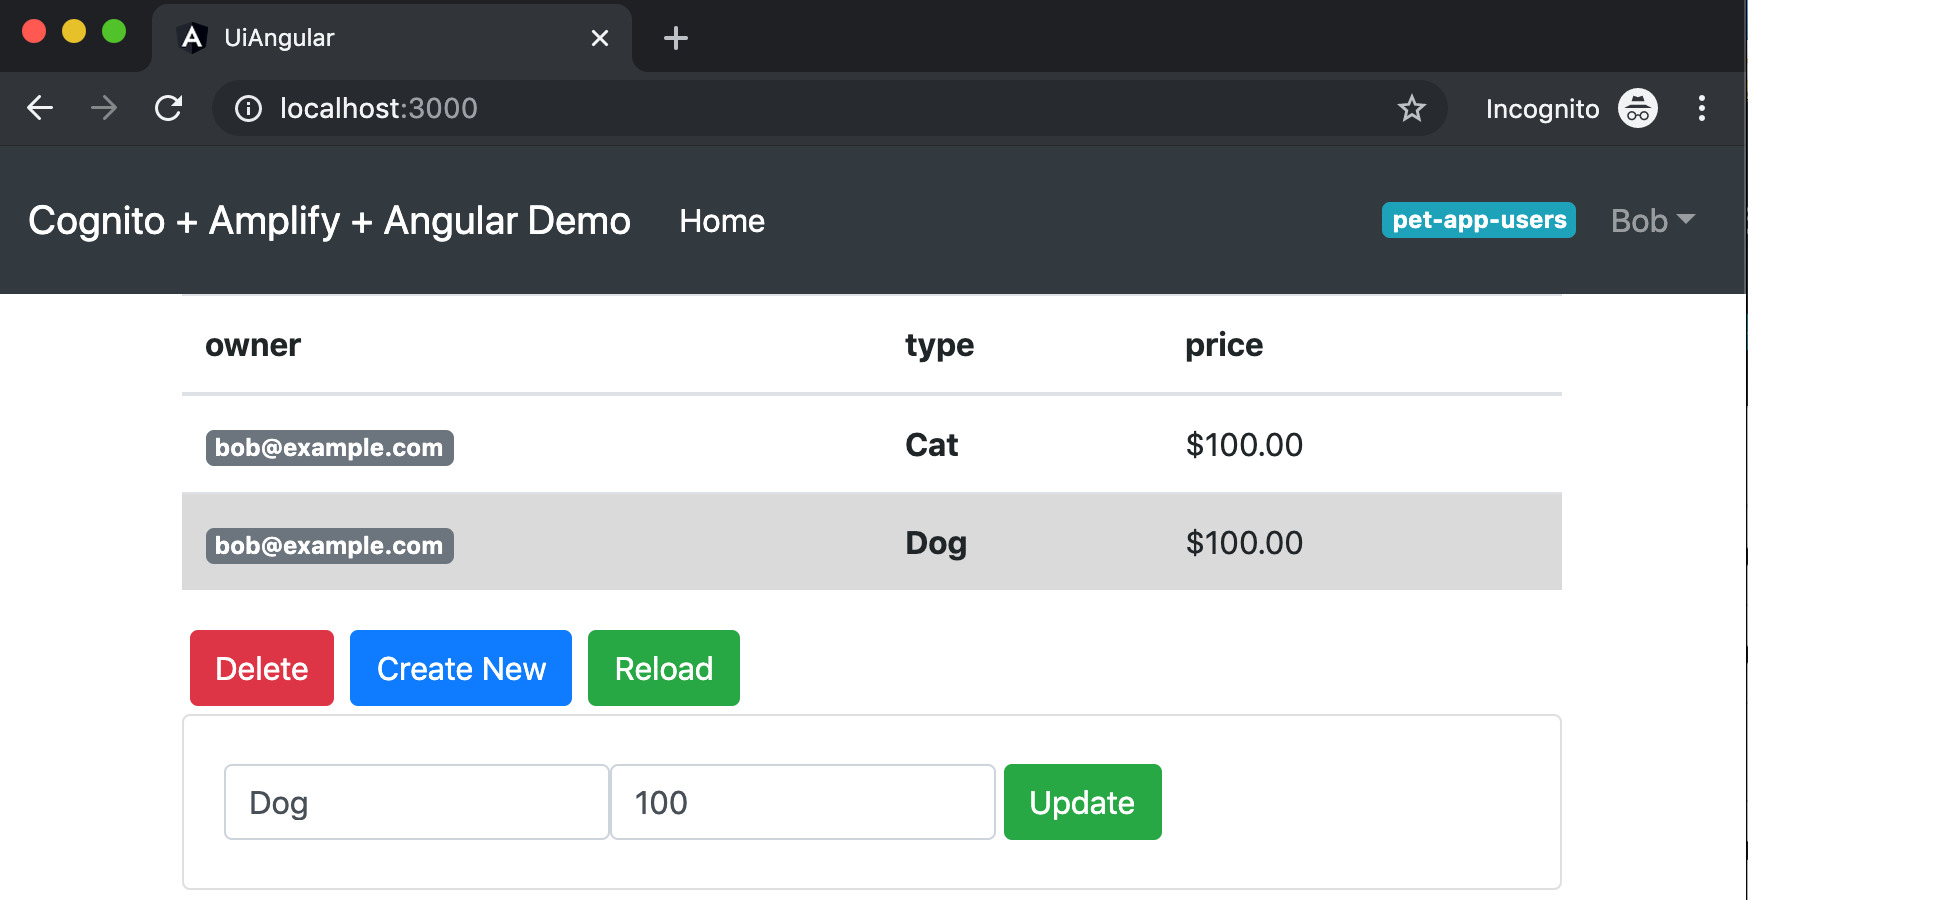 Figure 10: Example view for a user who is only a member of the pet-app-users group